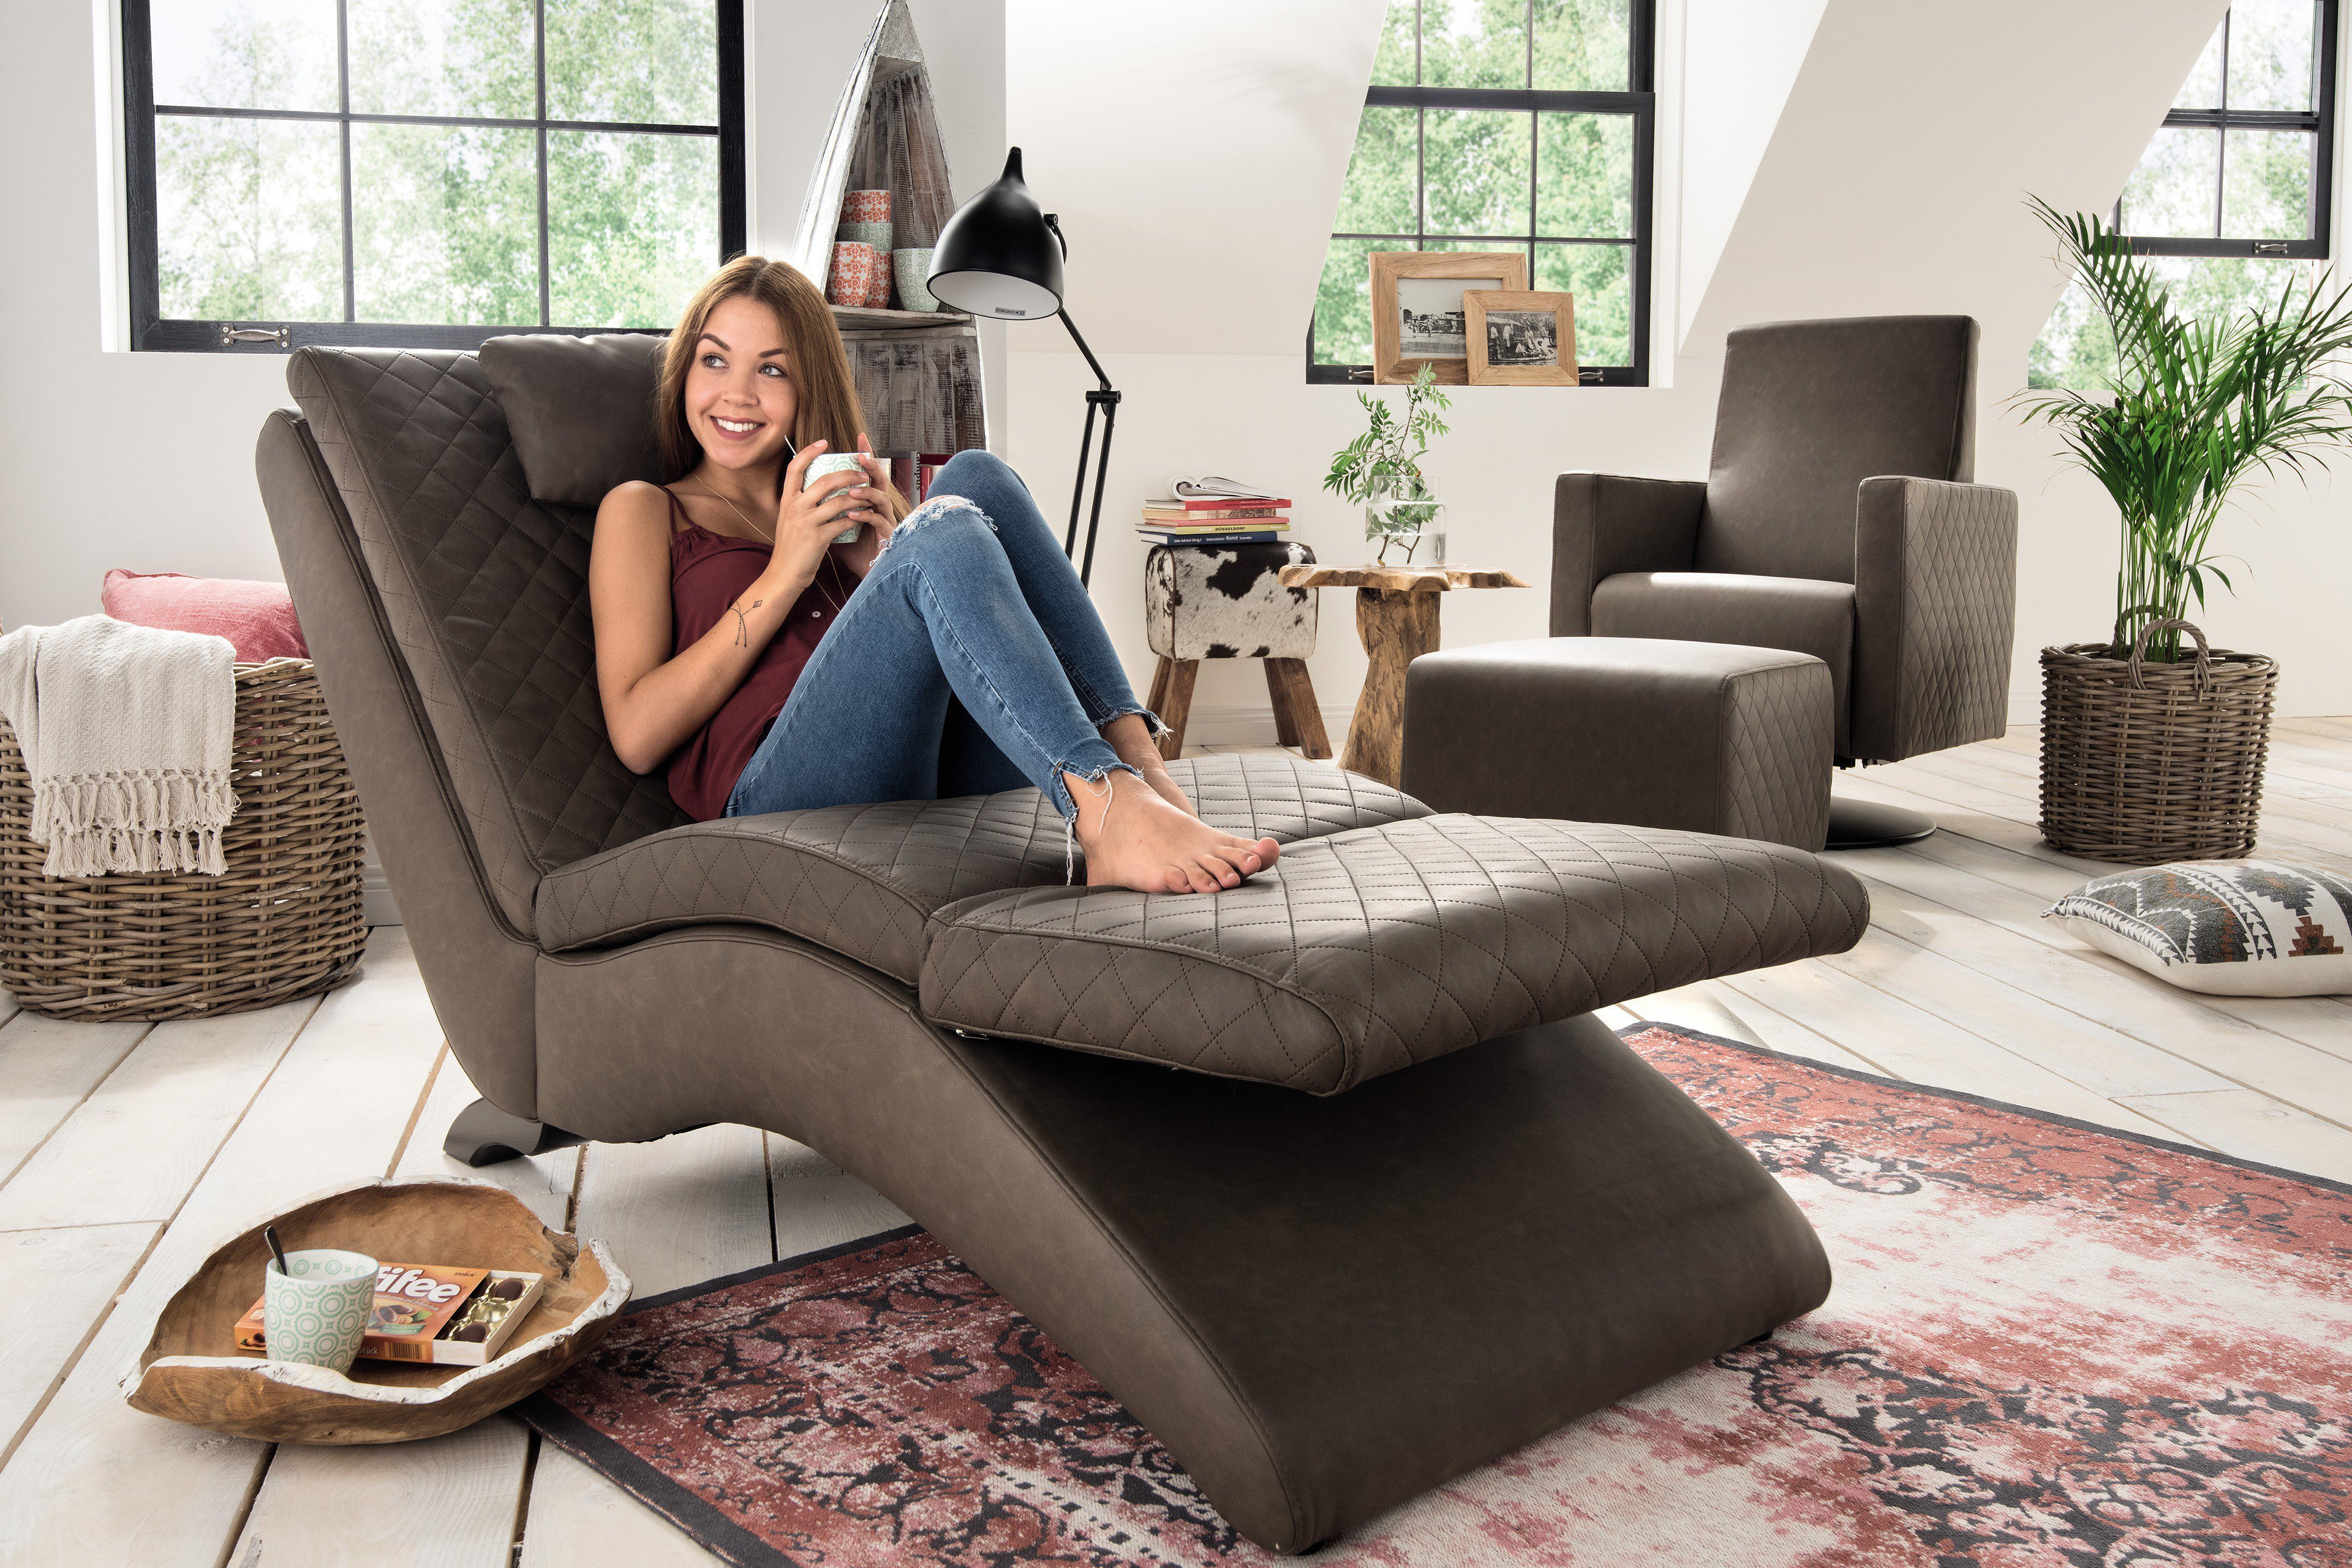 Lounge Sessel Relaxliege Relaxliege Lounge Sofa Design Couch Sessel Relaxliege